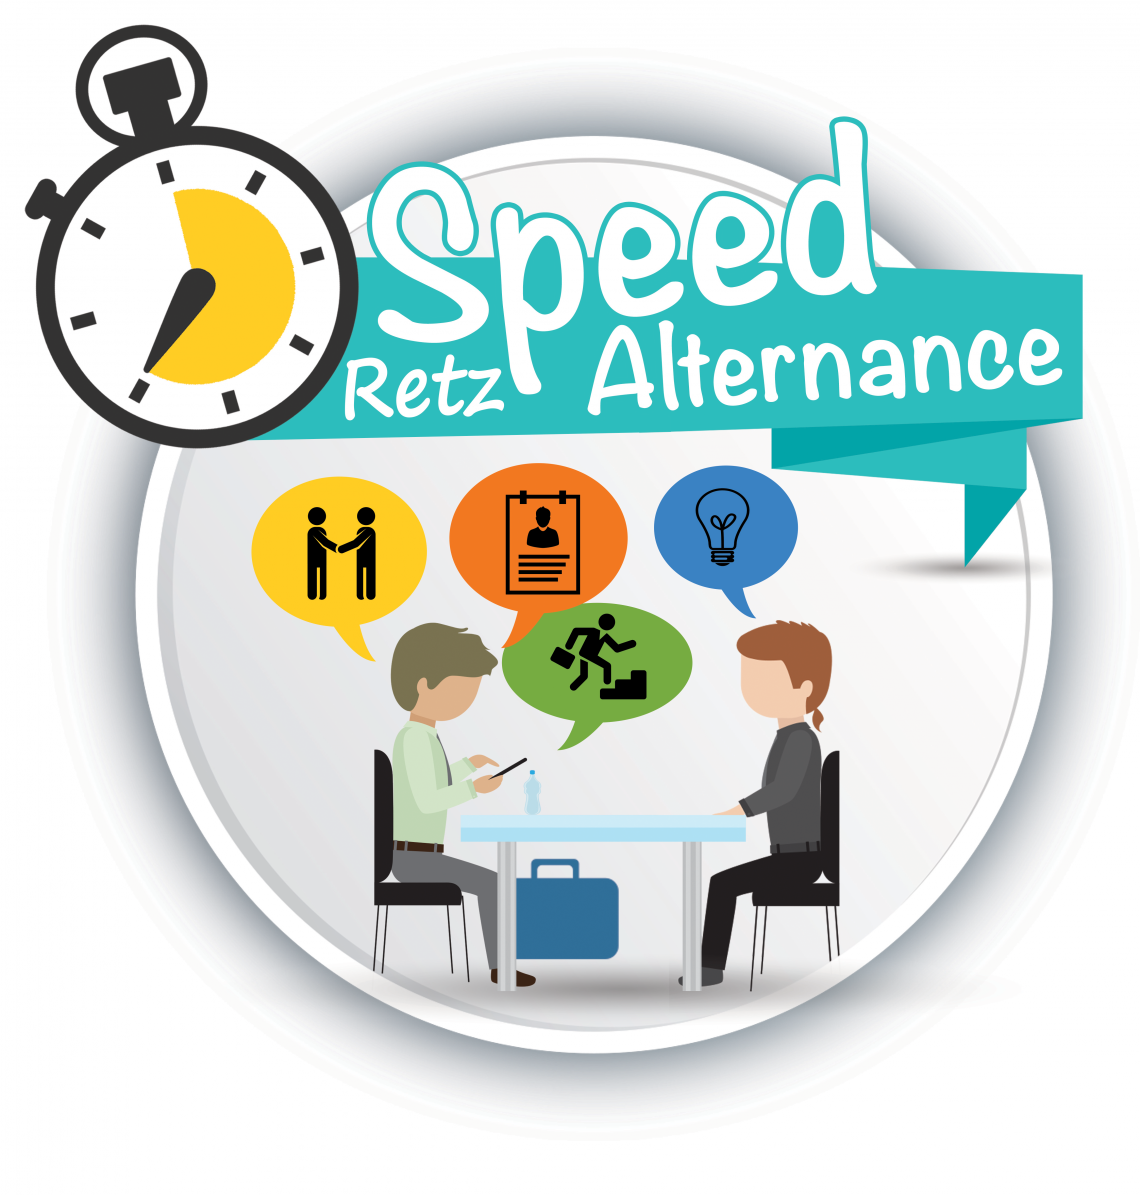 speed retz alternance